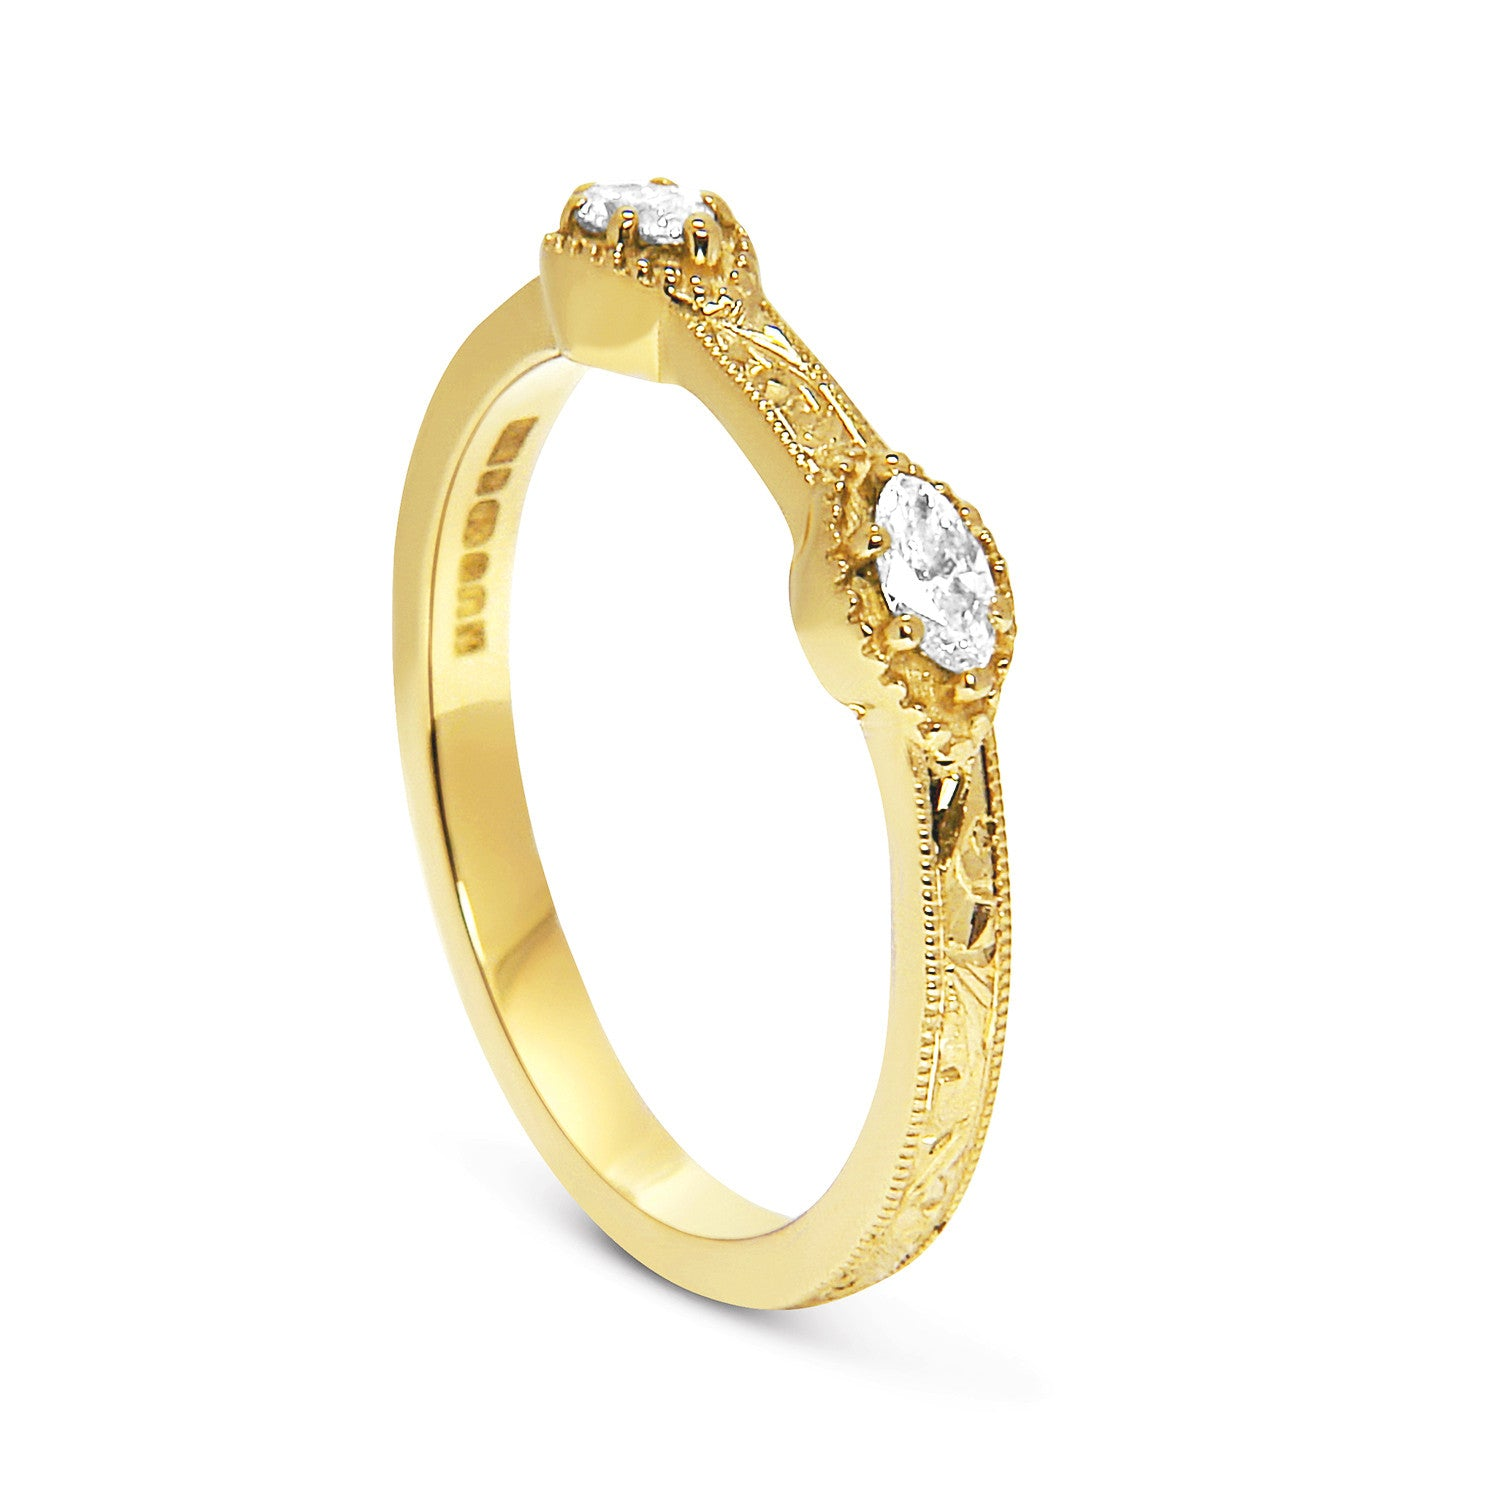 Bespoke Laura wedding ring - Fairtrade Gold, marquise diamonds, milgrain and scrolls